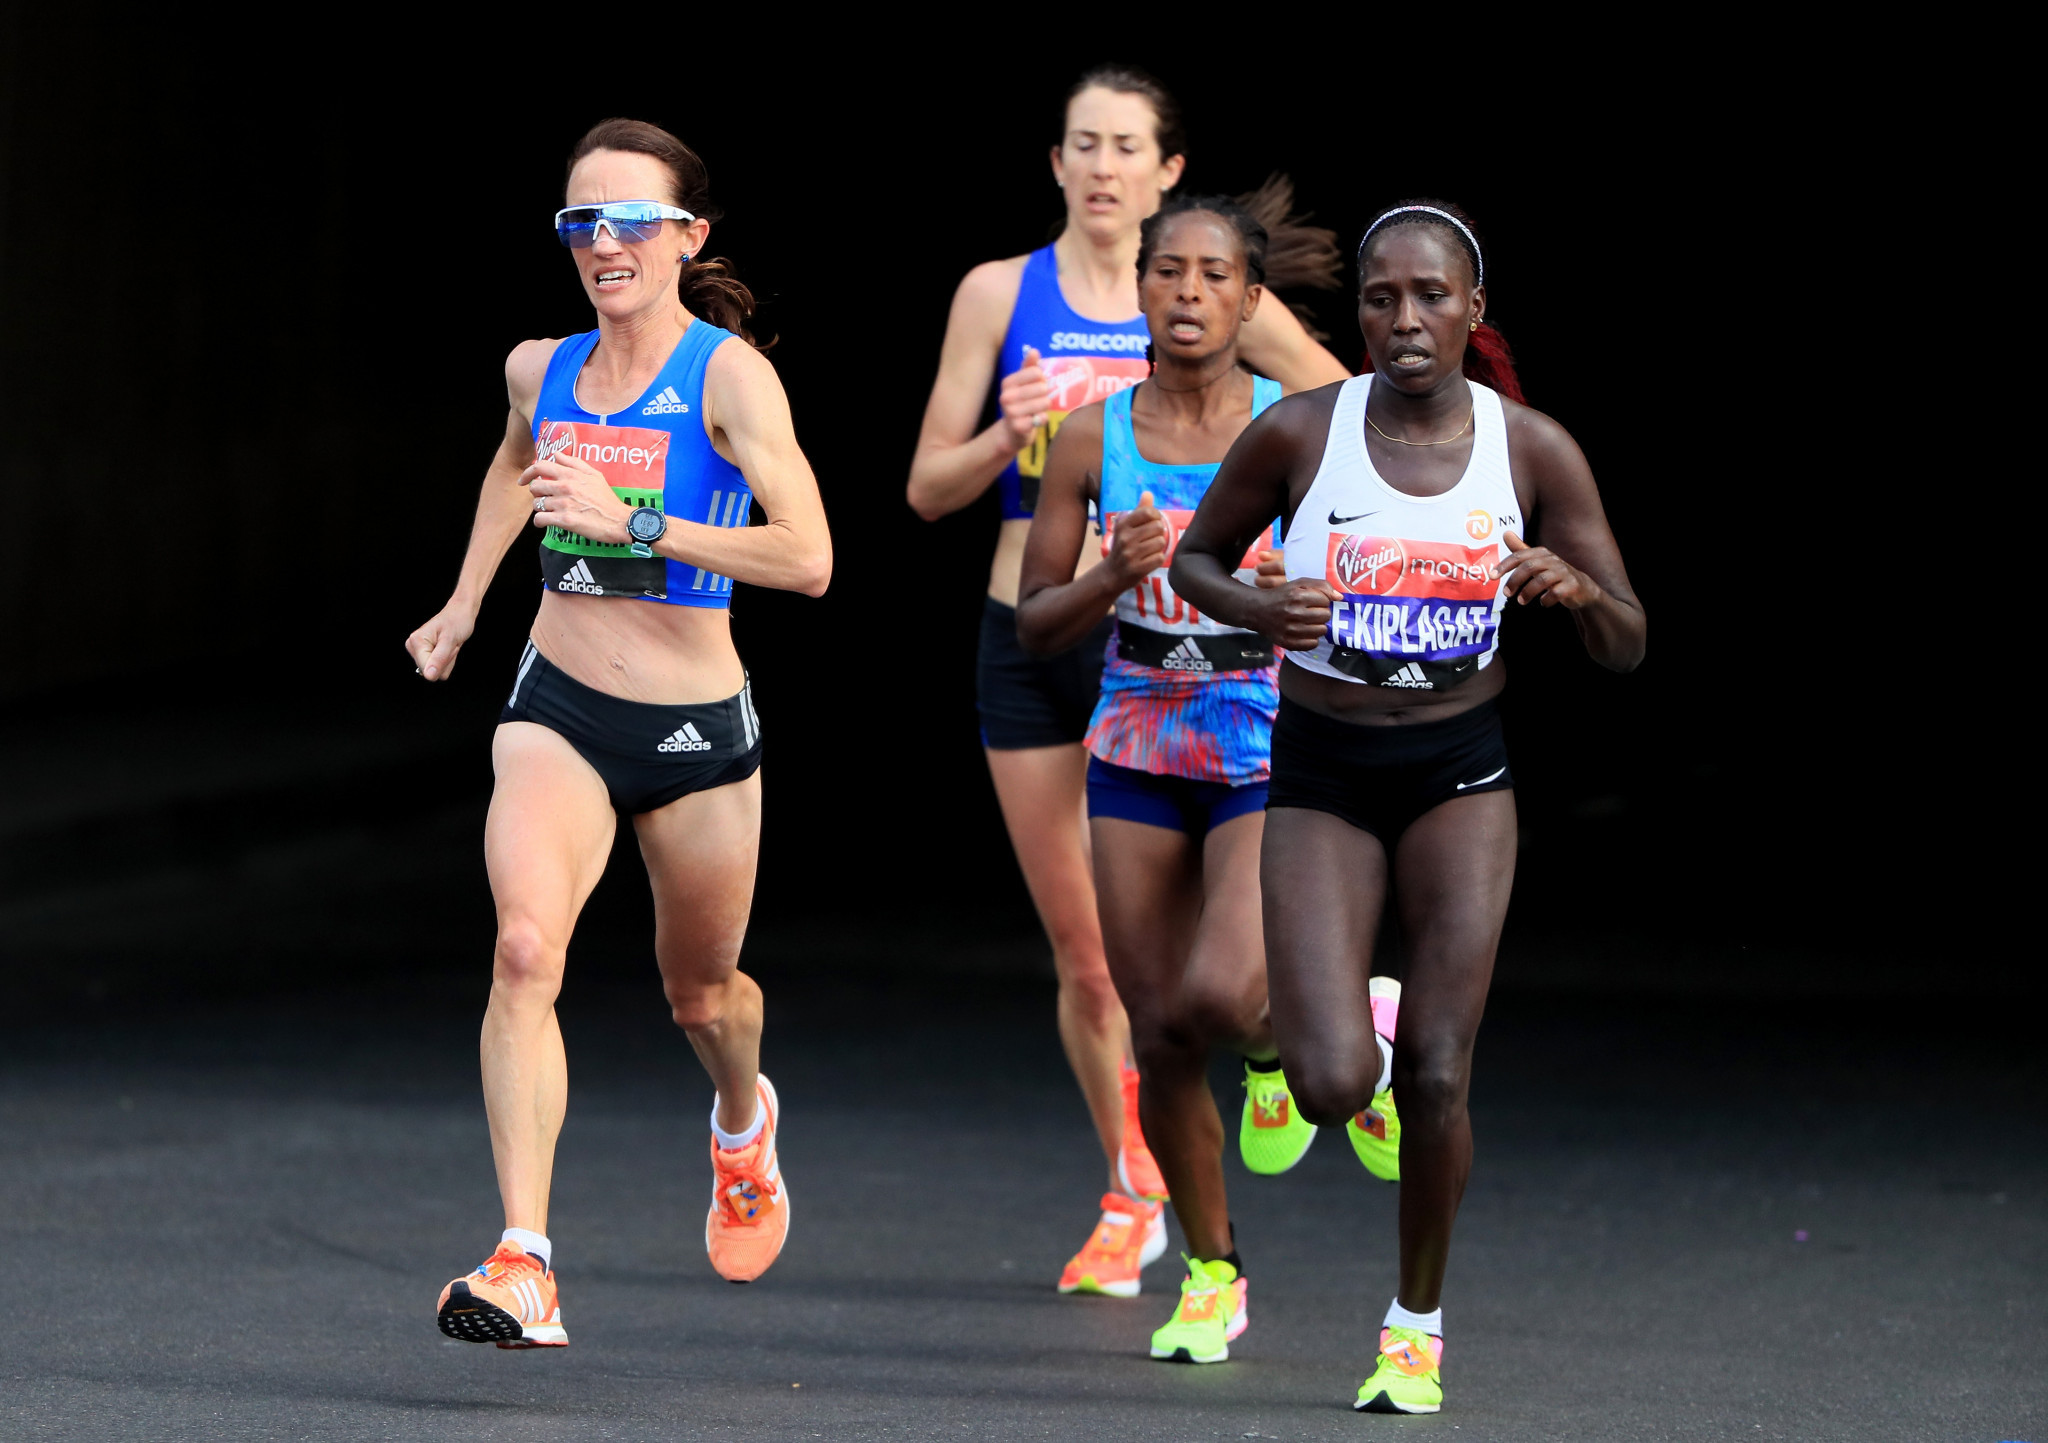 Lisa Weightman, left, recorded a personal best marathon time at last year's London Marathon ©Getty Images